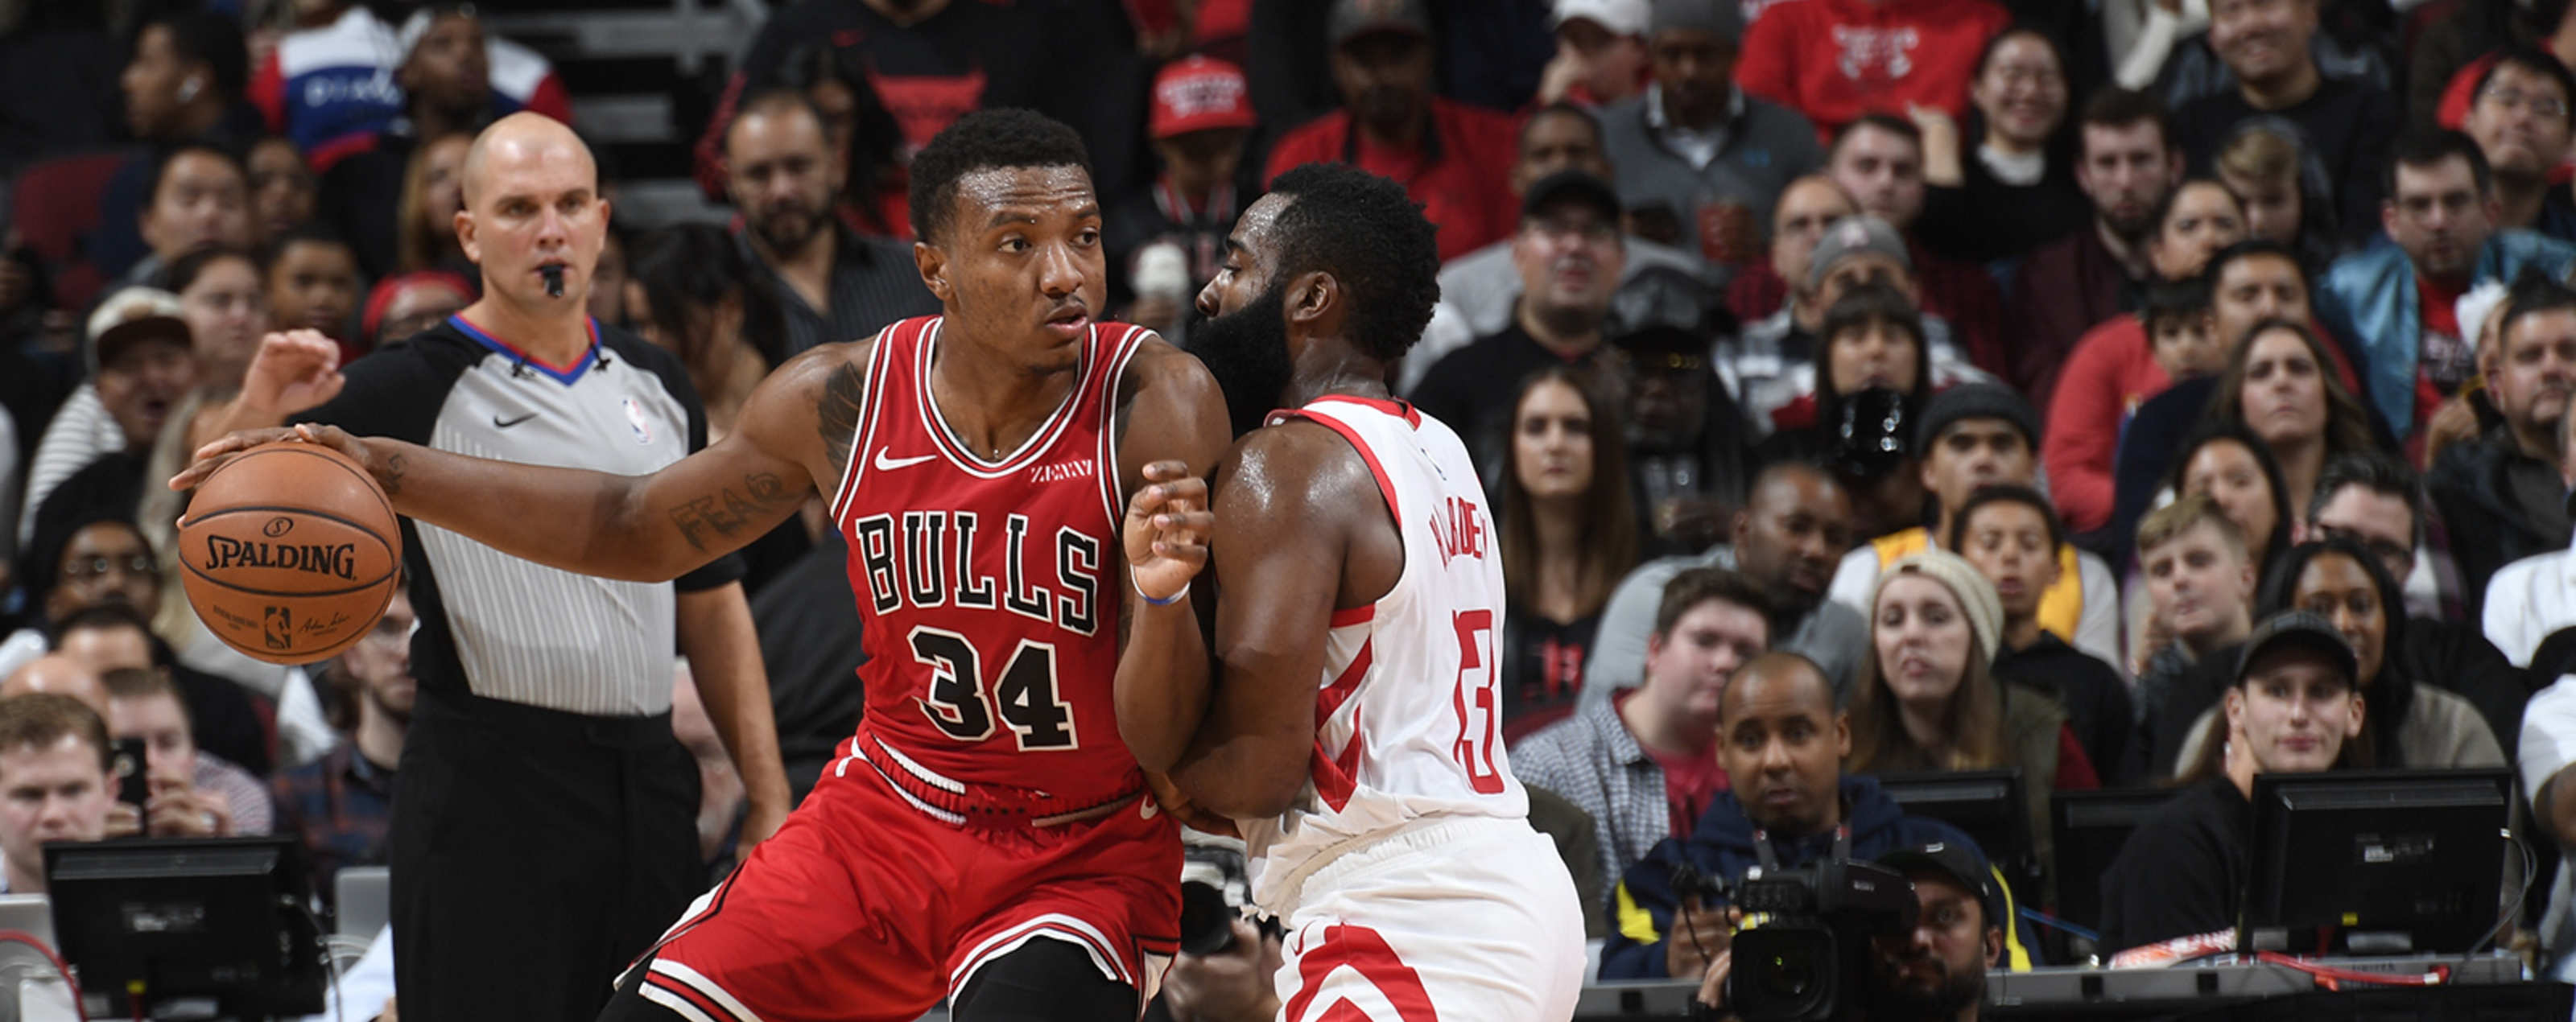 chuck's daily check in - 11.4.18 | chicago bulls